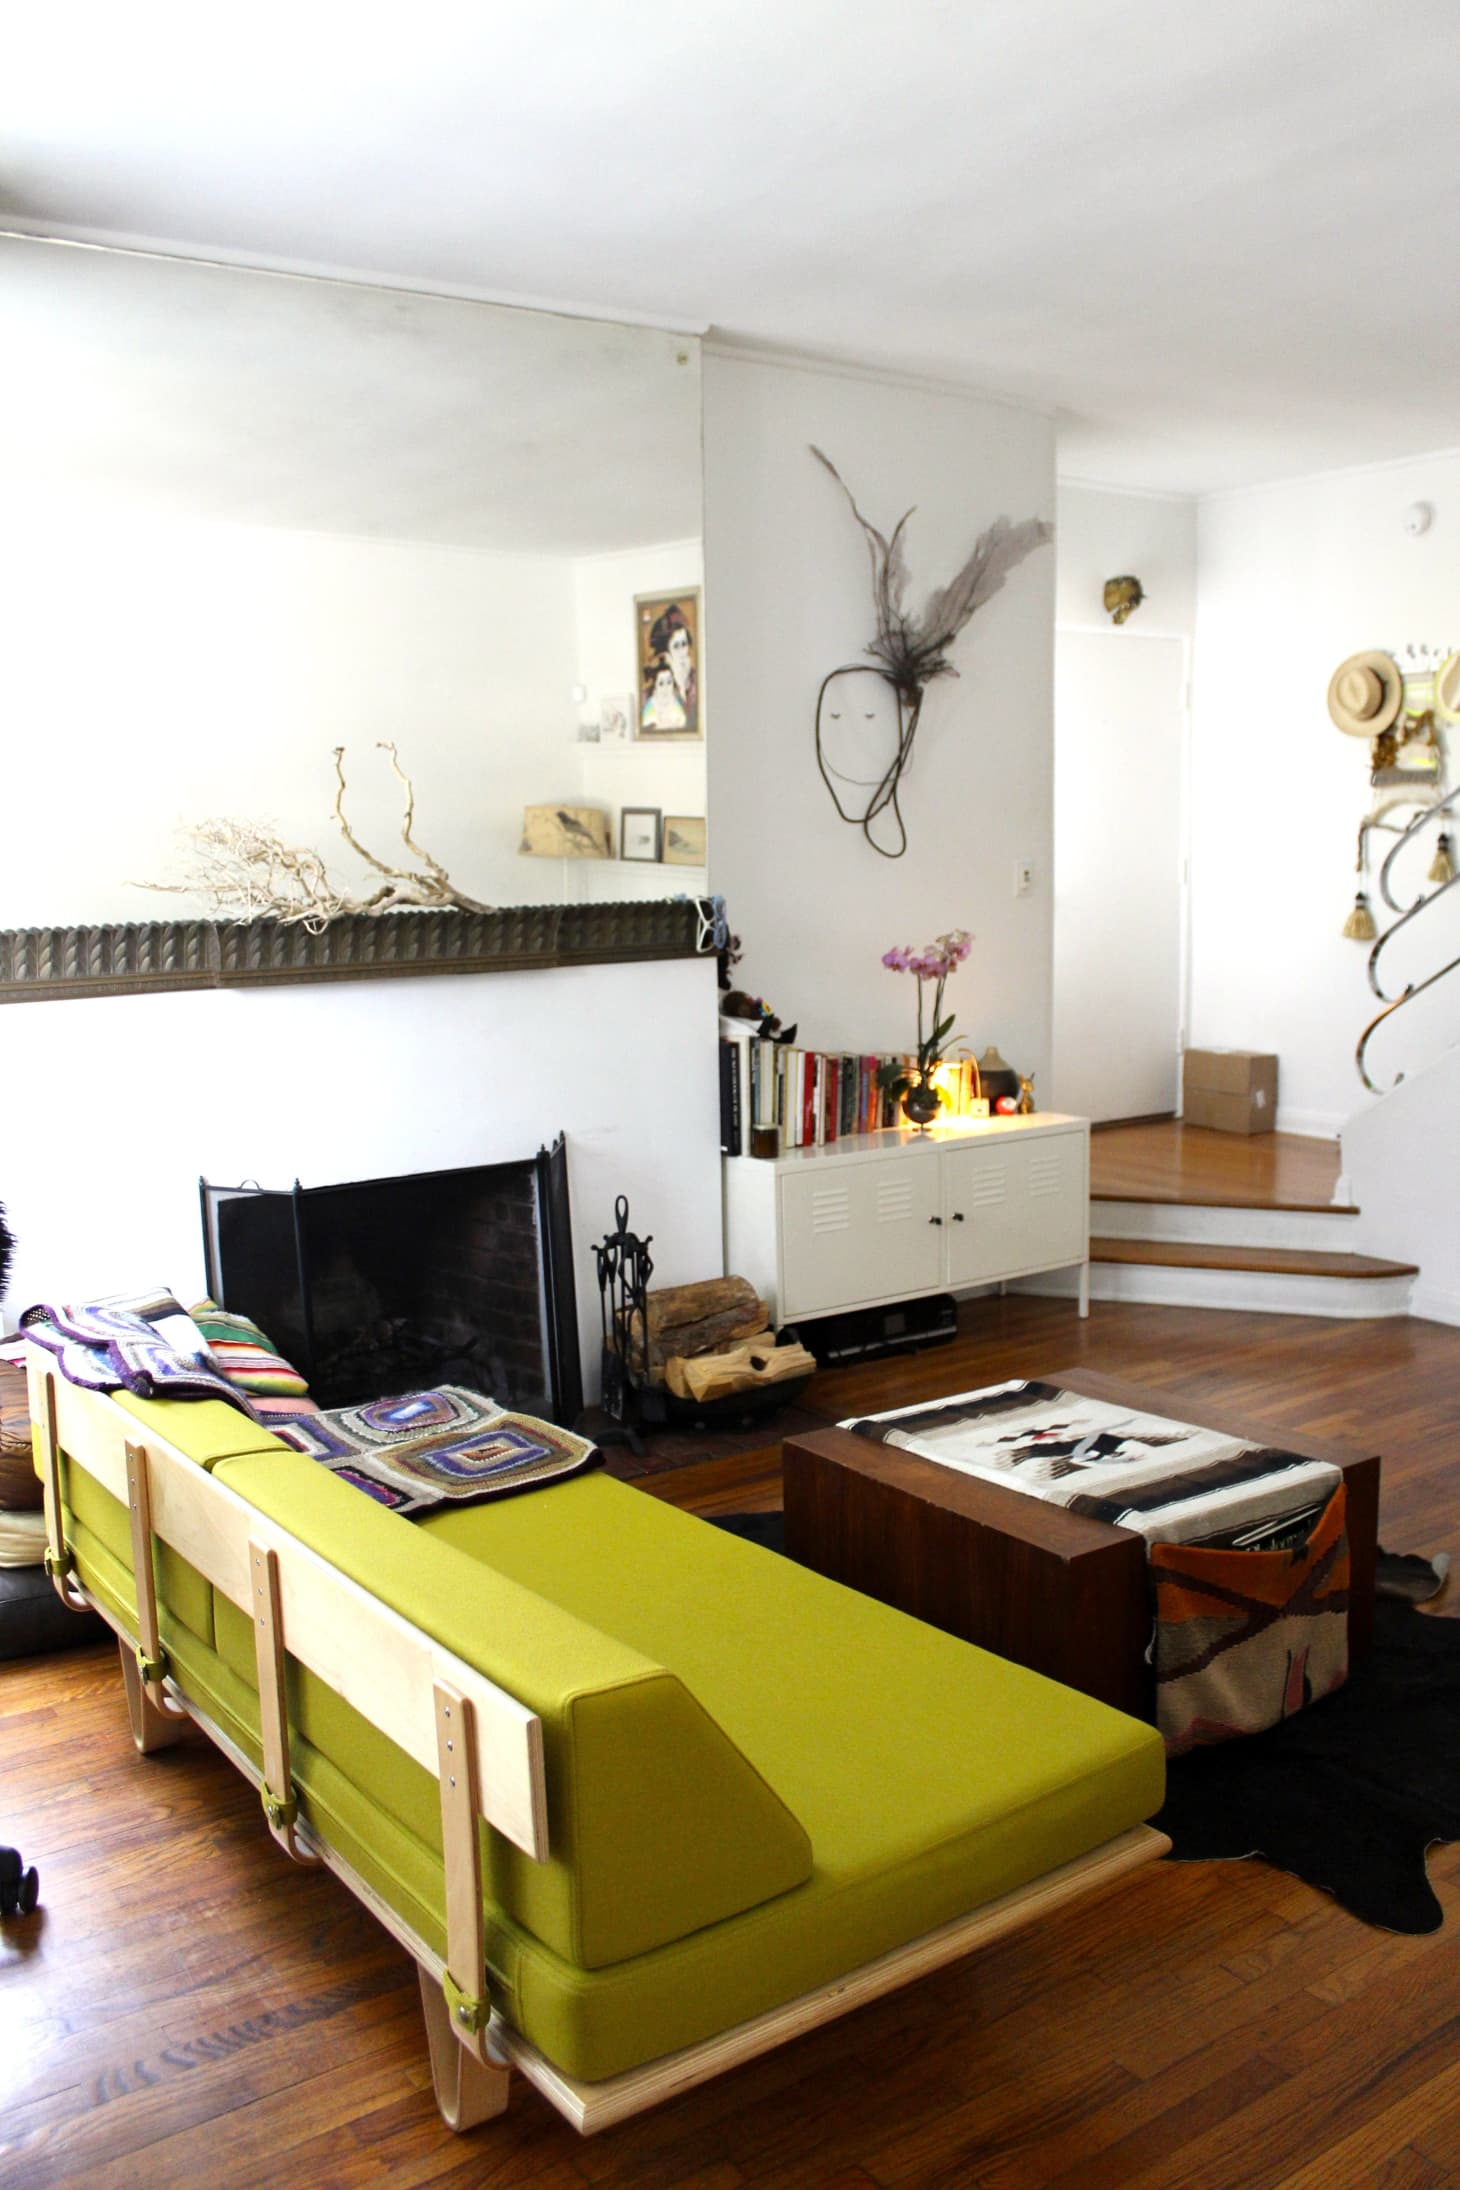 Room Arranging: Don't Make These Mistakes When Arranging Your Living Room